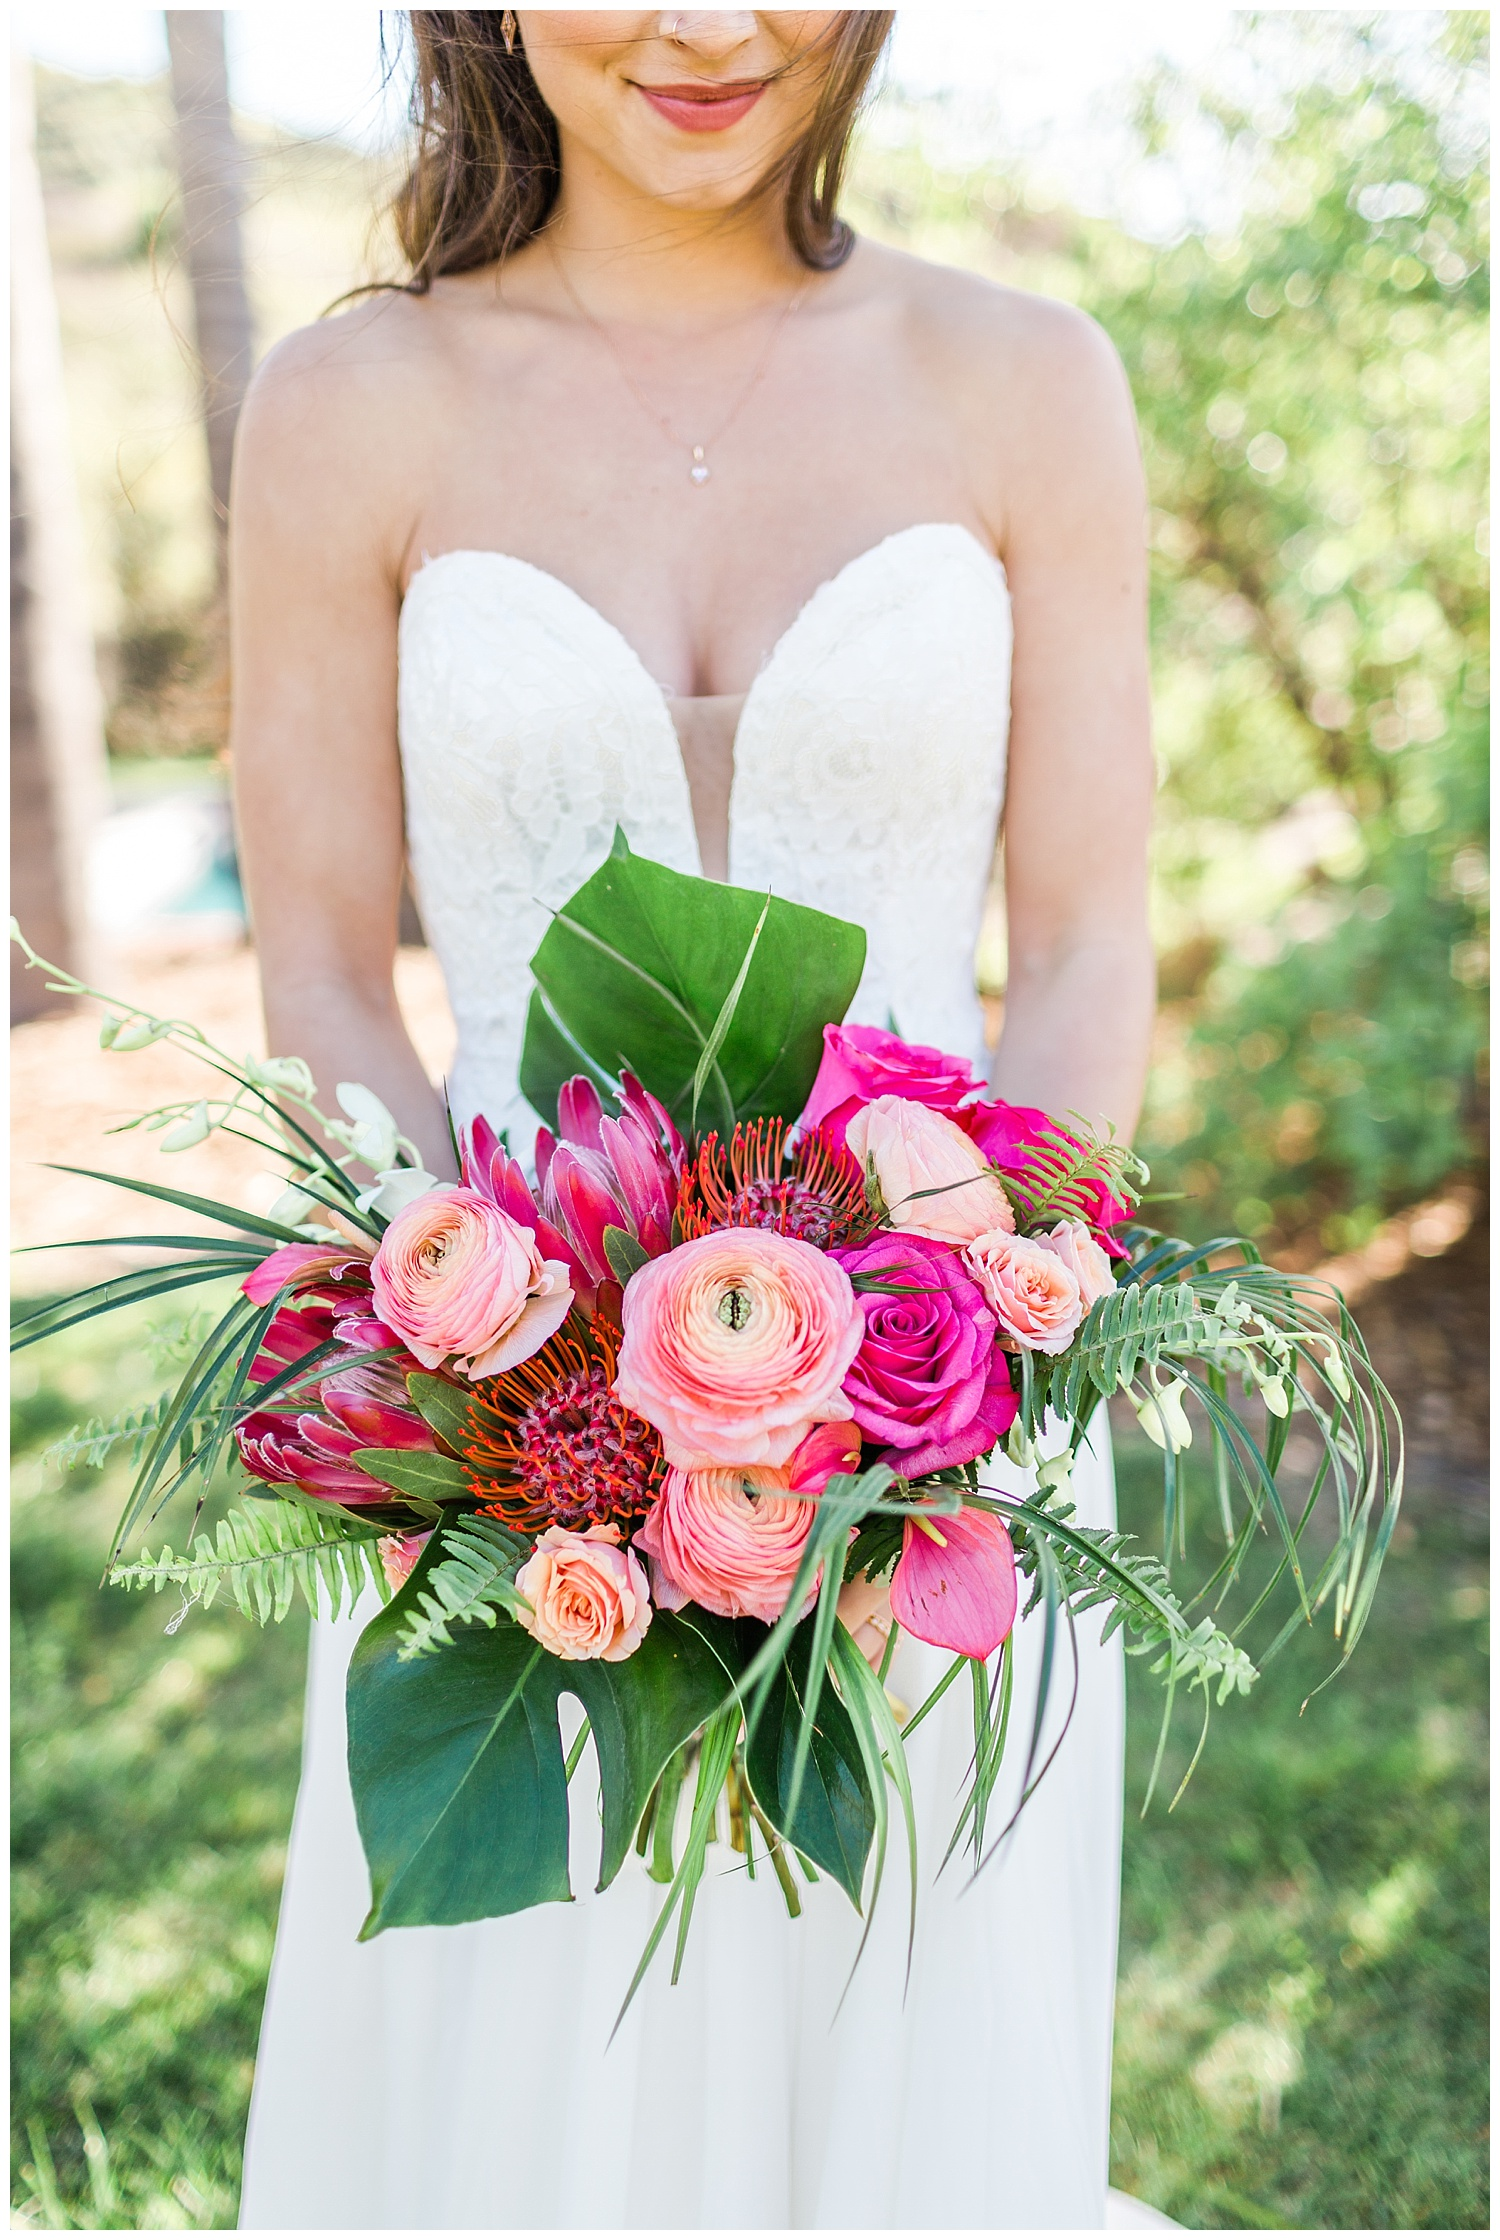 Flourish-events-floral-bouquet.jpg